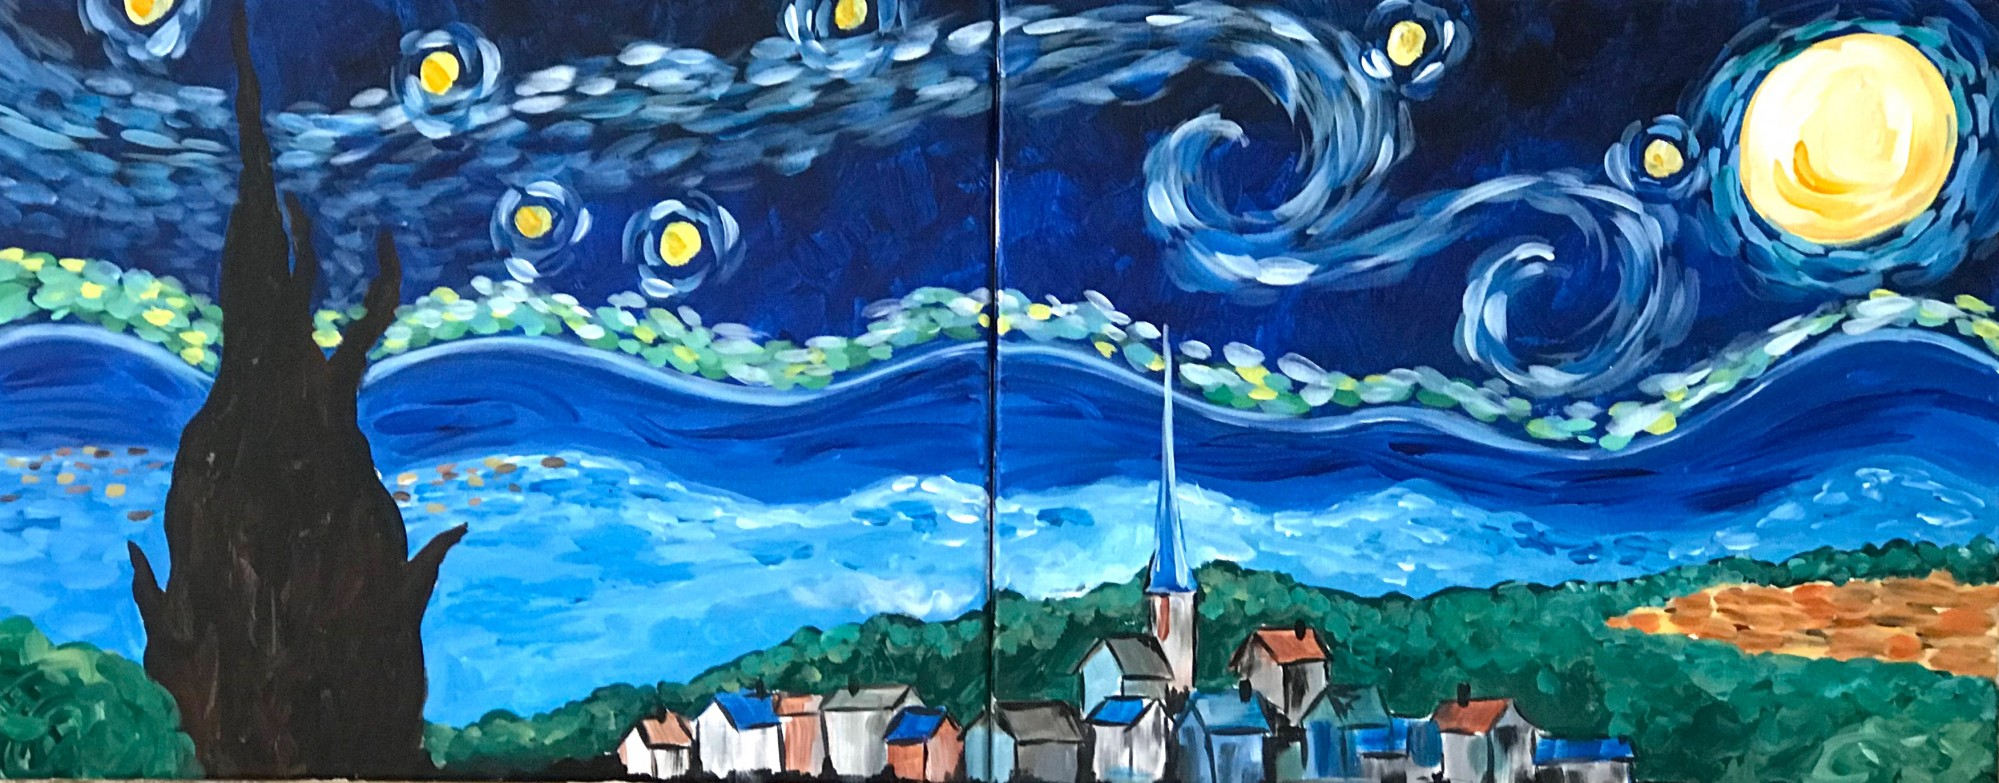 Starry Sky Date Night $25 - Downtown GR